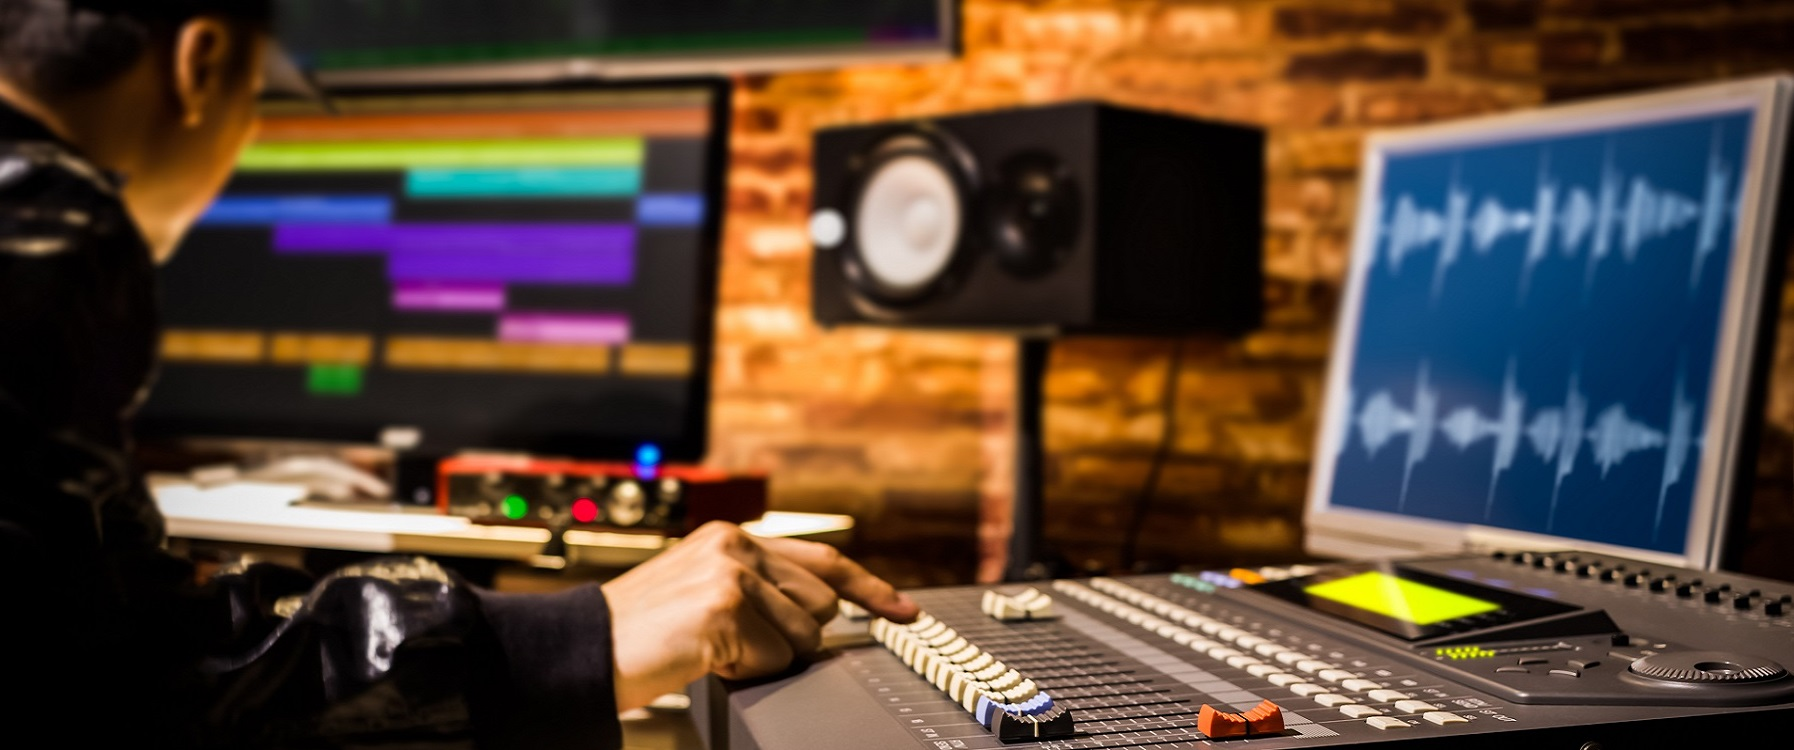 Music production and sound engineering tuition at Midimadness Studios Chichester